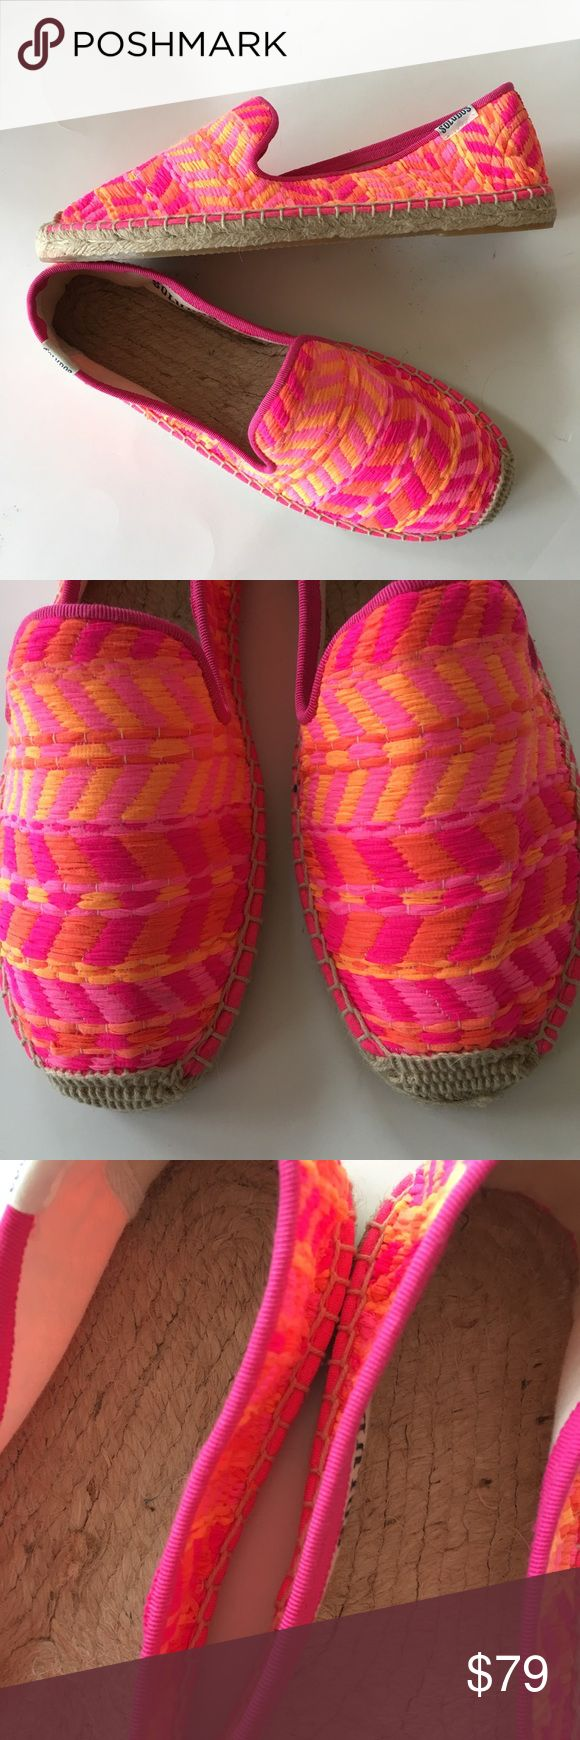 "NEW SOLUDOS smoking slipper woven pink espadrille Super comfy espadrille summer shoes with rope insoles- feels like every day is a walk on the sandy beach! Hot pink multi chevron. By SOLUDOS, a brand sold st Urban Outfitters. Retail $175. New in box w tags. (1800) Available in US WOMENS sizes 8, 9, 10. Pinterest says they're ""Ashton Kutcher's Pick""! Urban Outfitters Shoes Flats & Loafers"